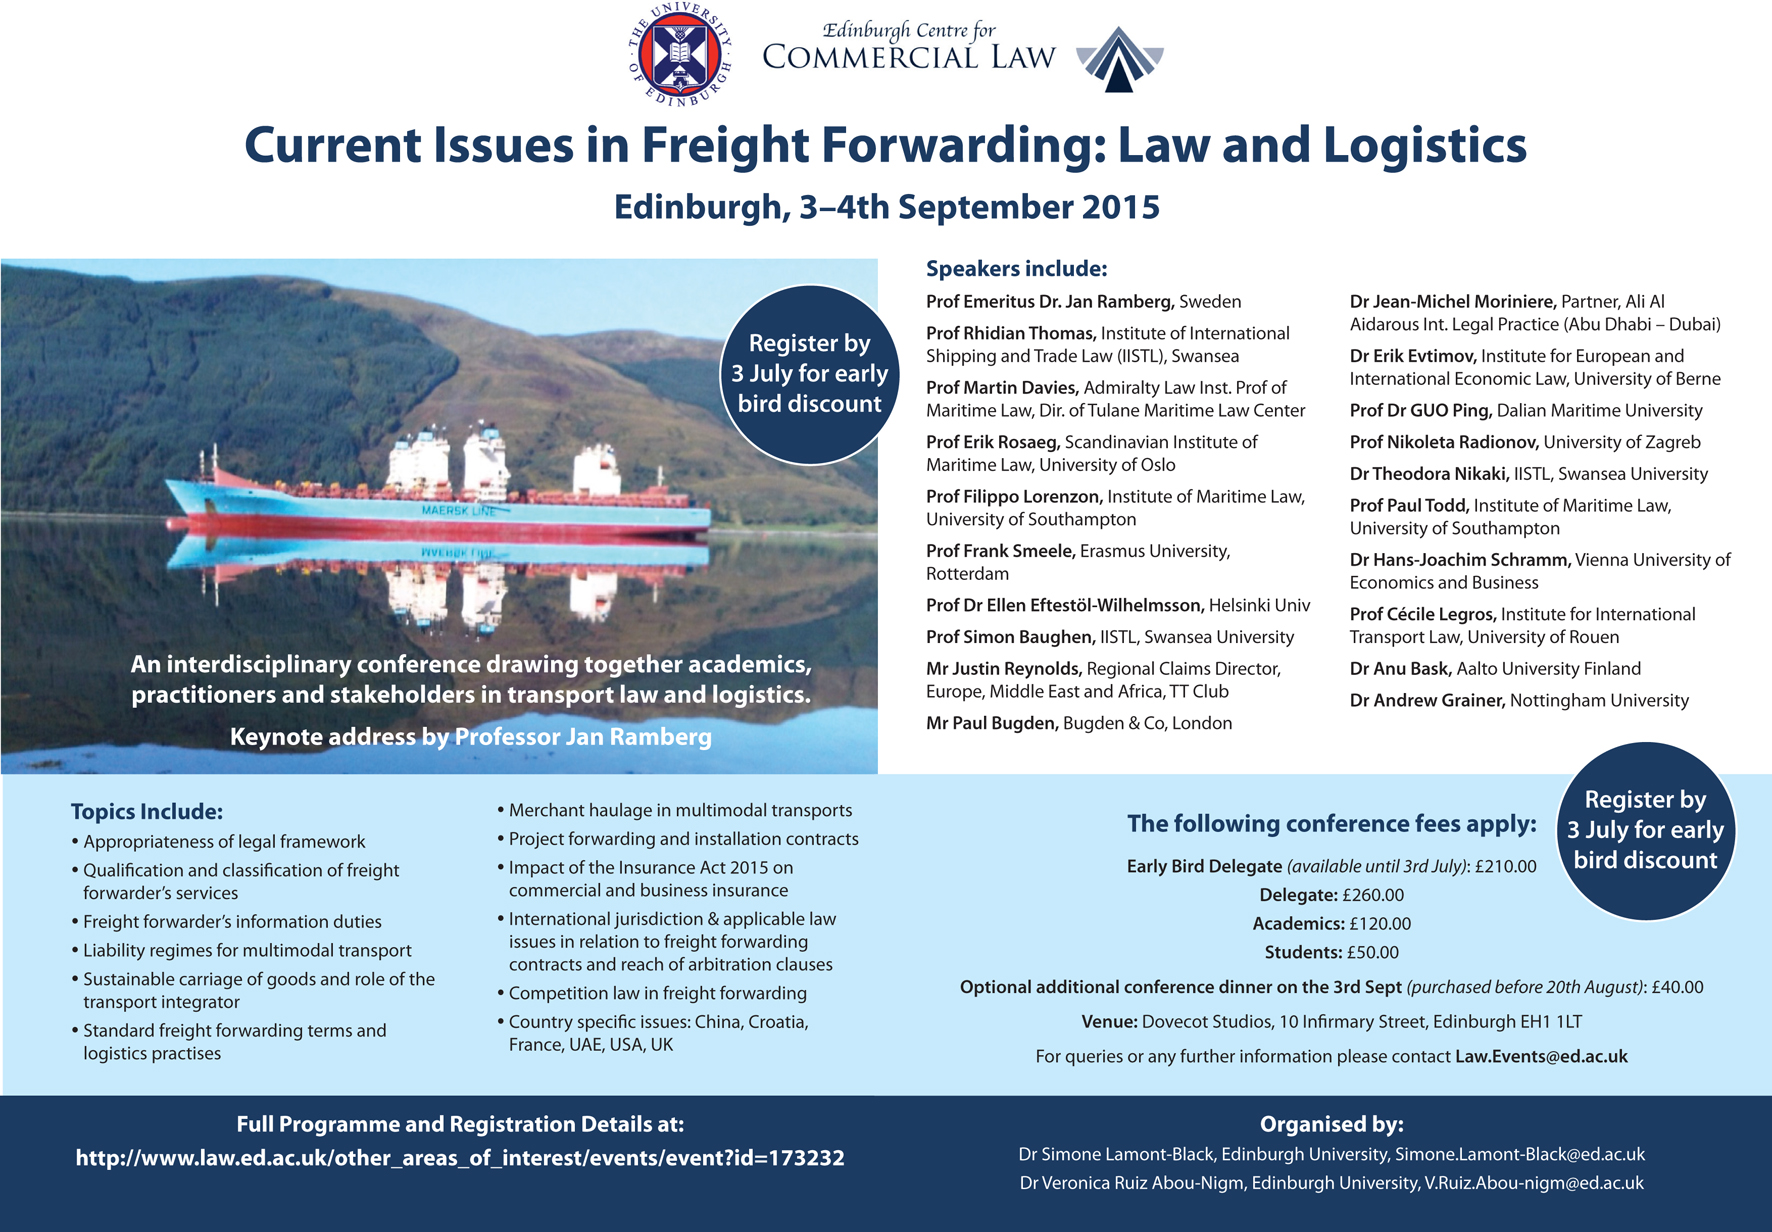 Current Issues in Freight Forwarding: Law and Logistices  Edinburgh 3 - 4 Sept 2015